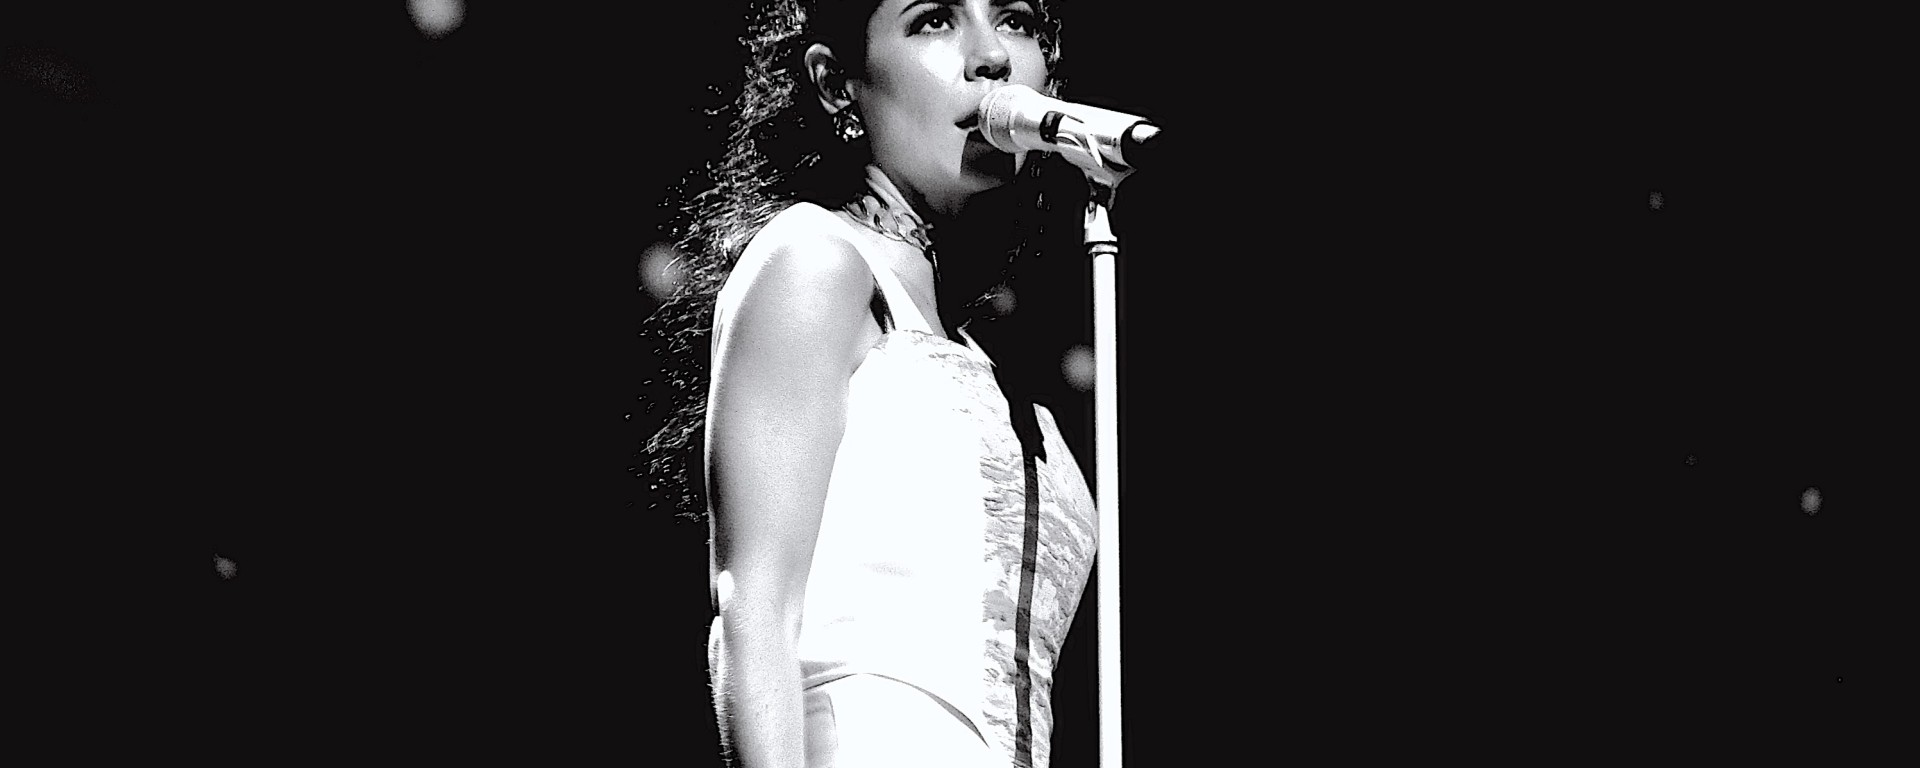 Black and white photo of Marina Diamandis singing on a stage.